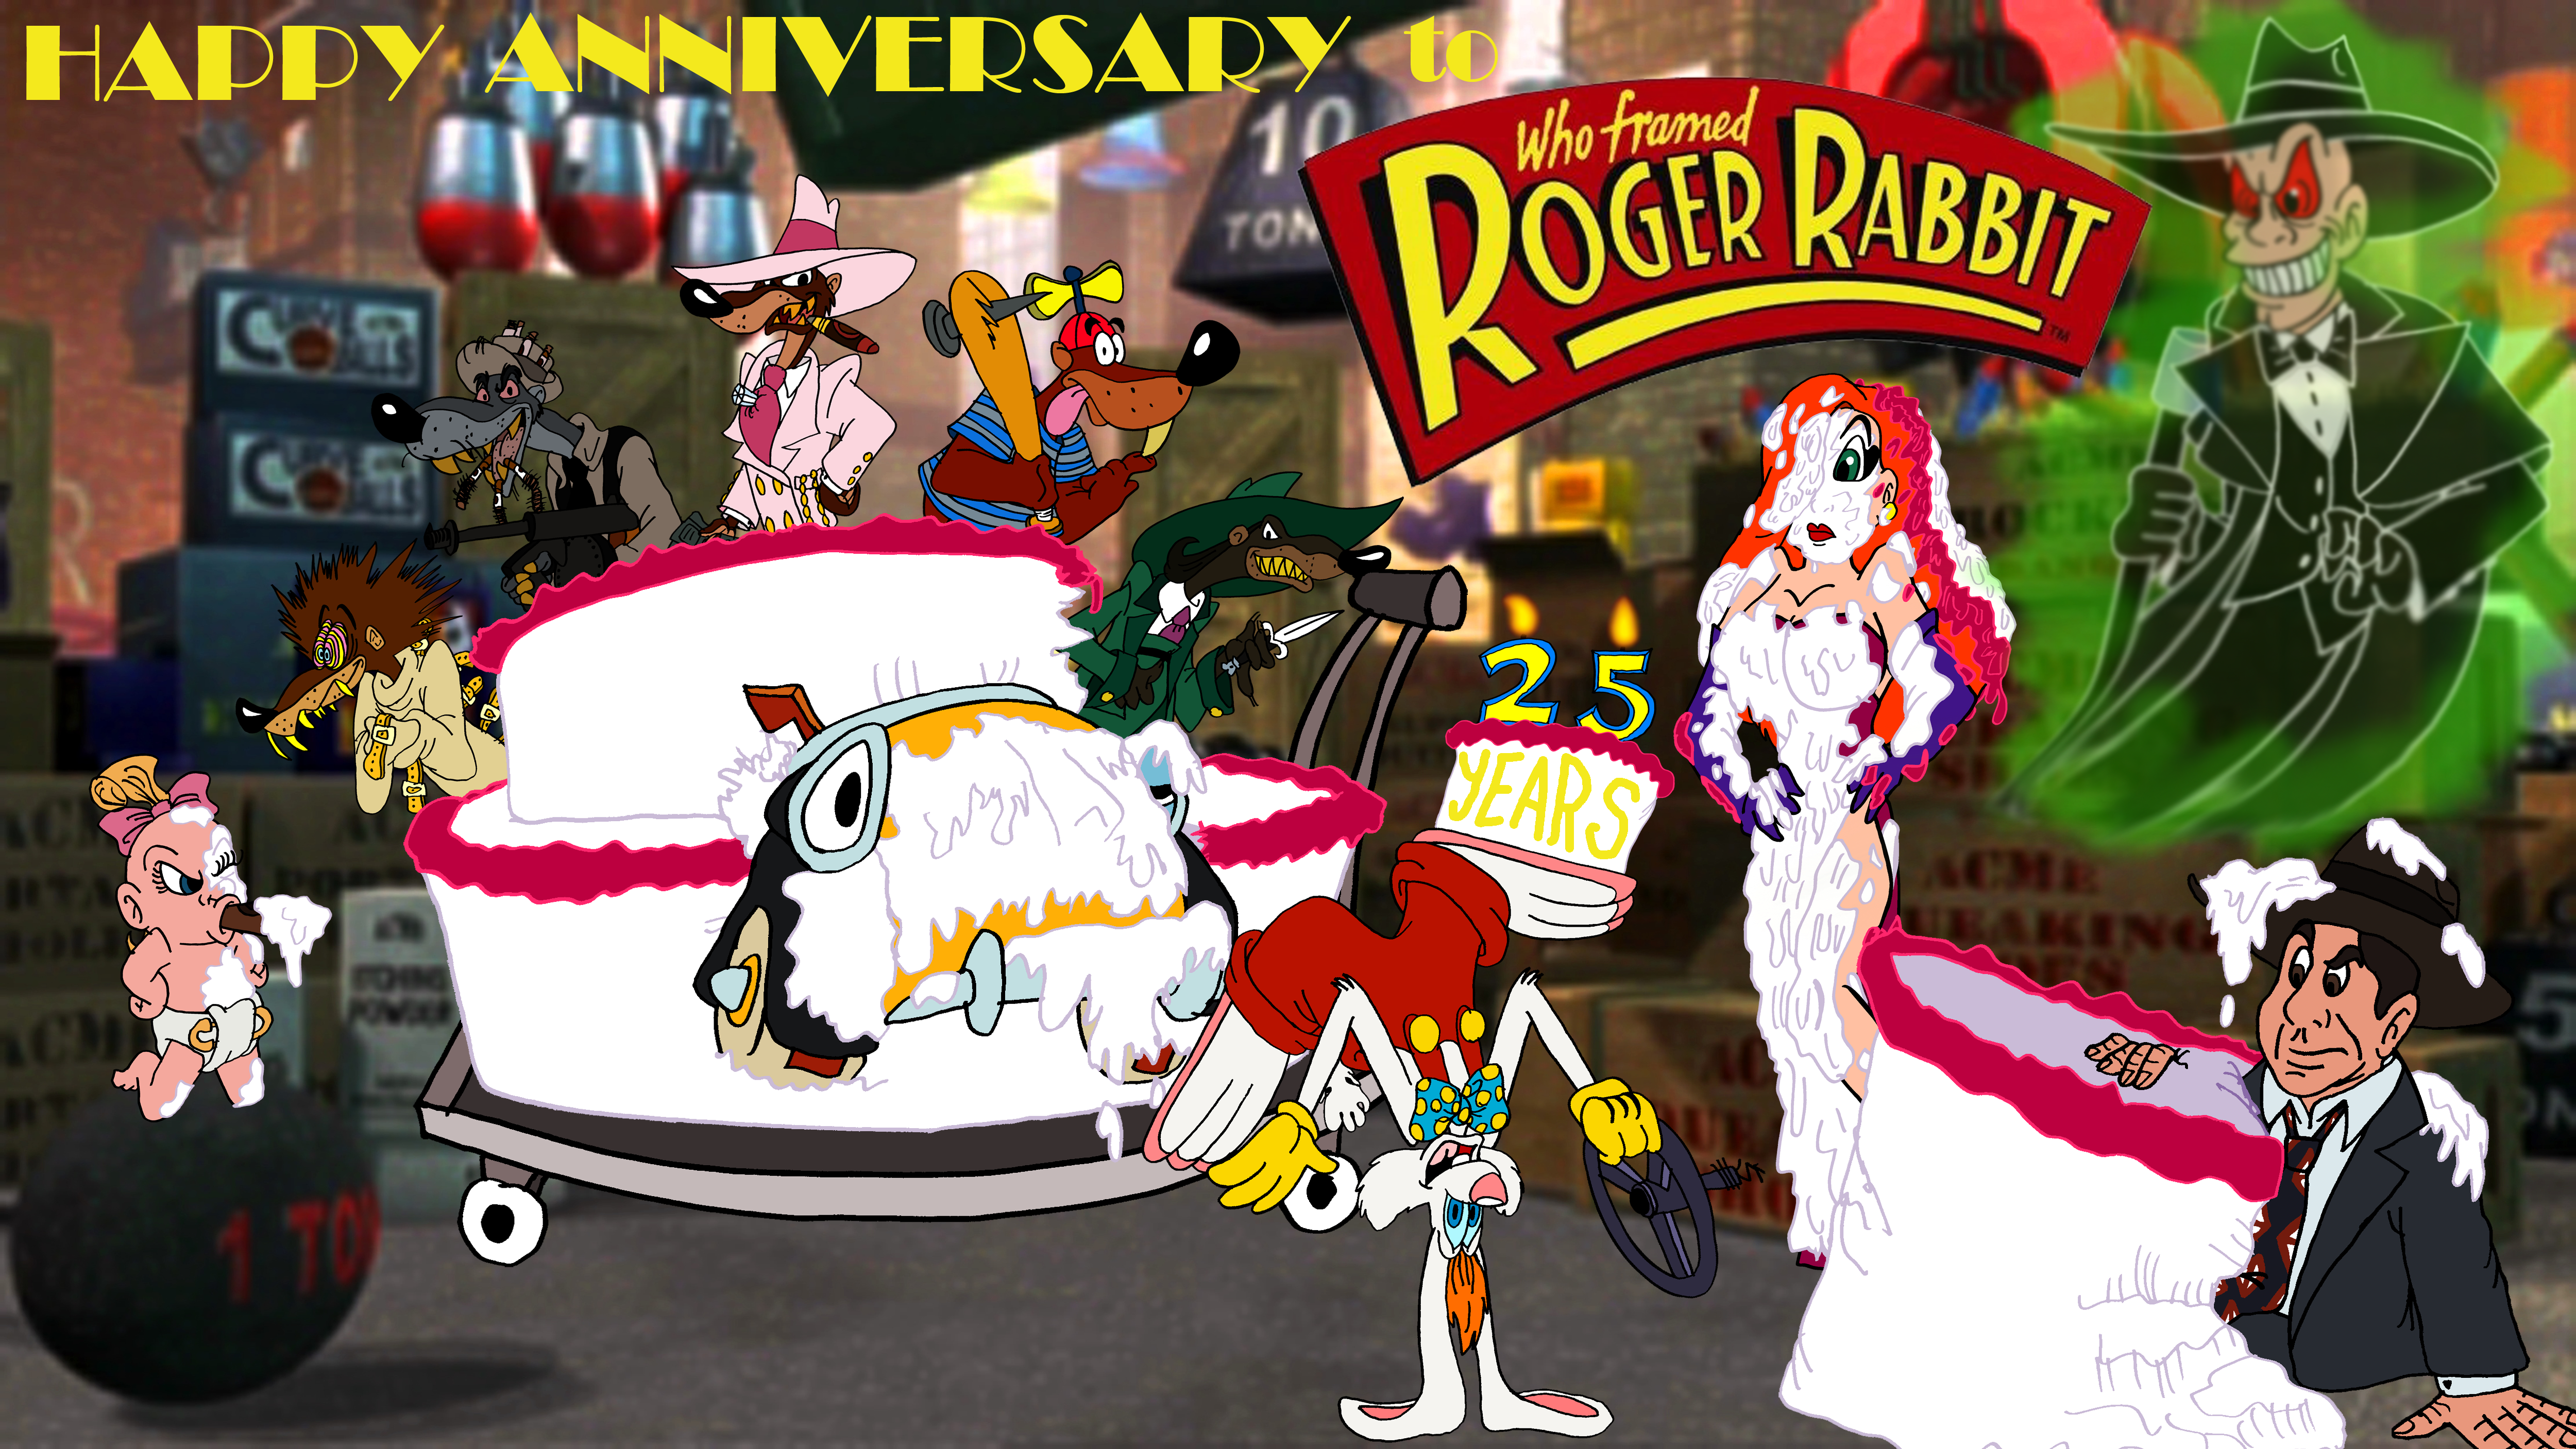 Happy 25th Anniversary, Roger Rabbit! by AverageJoeArtwork on DeviantArt